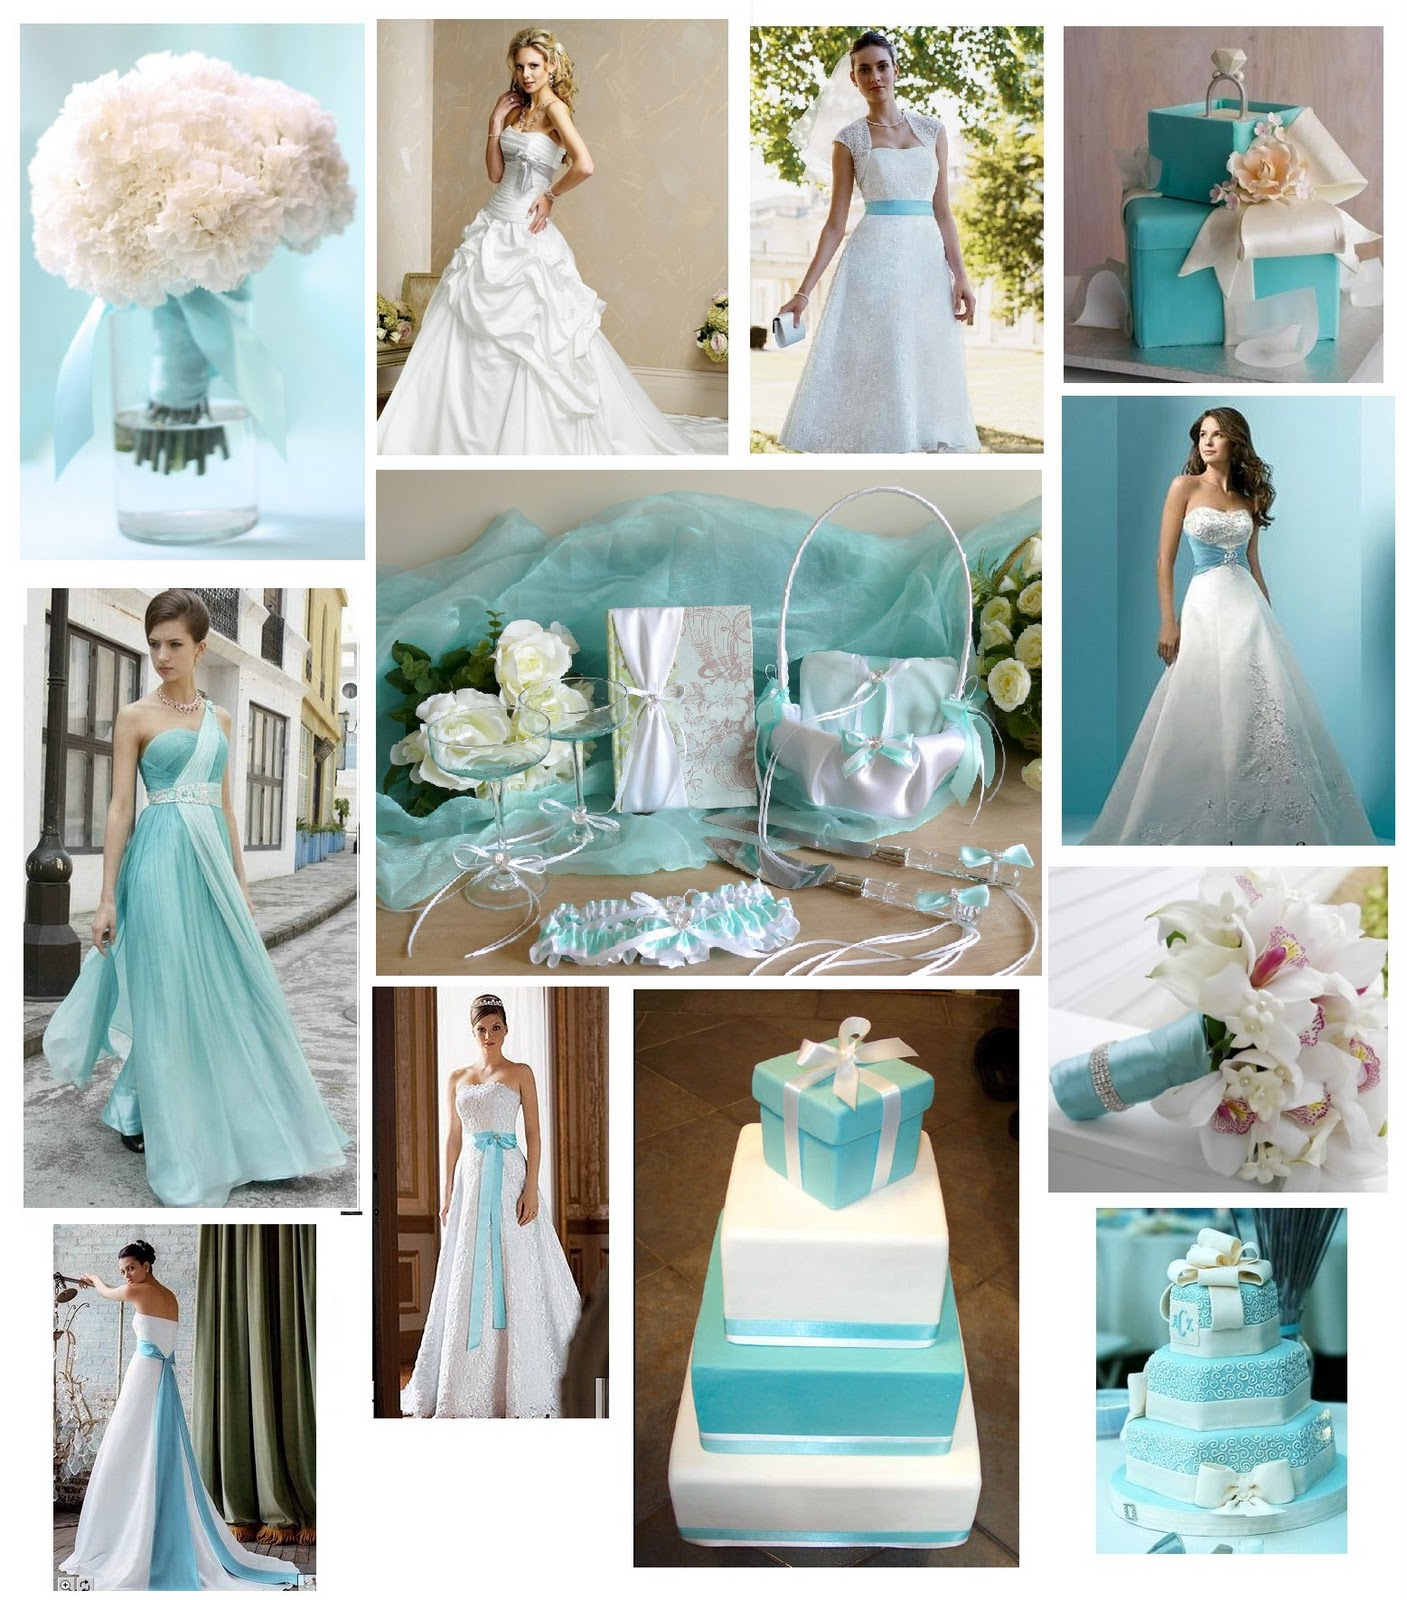 Tania s Cheap and Chic Designs Wedding at Tiffany s